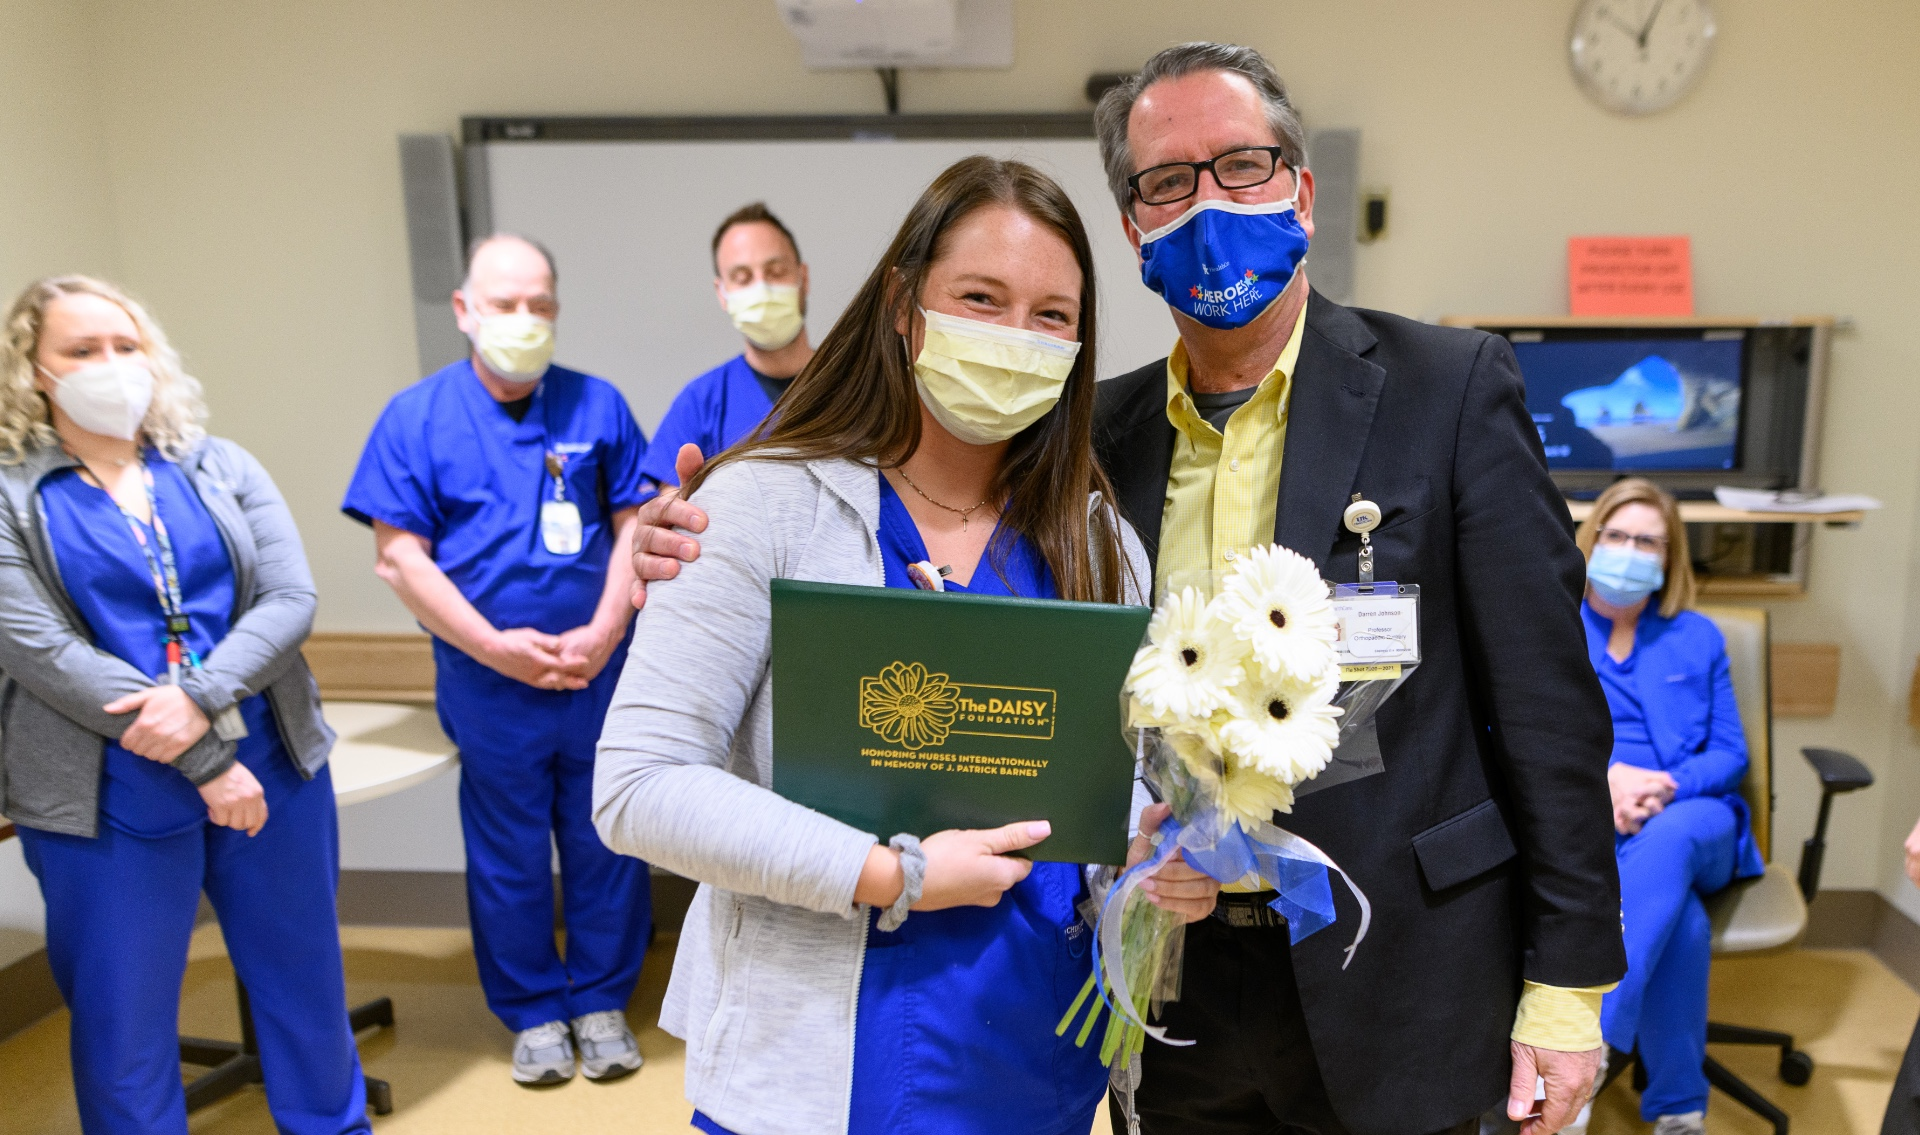 Holding a bouquet of flowers, Alexis Zody, an adult white woman with brown hair in blue scrubs, stands beside Dr. Johnson for a photograph. They are surrounded by colleagues, and everyone pictured is wearing a facemask.